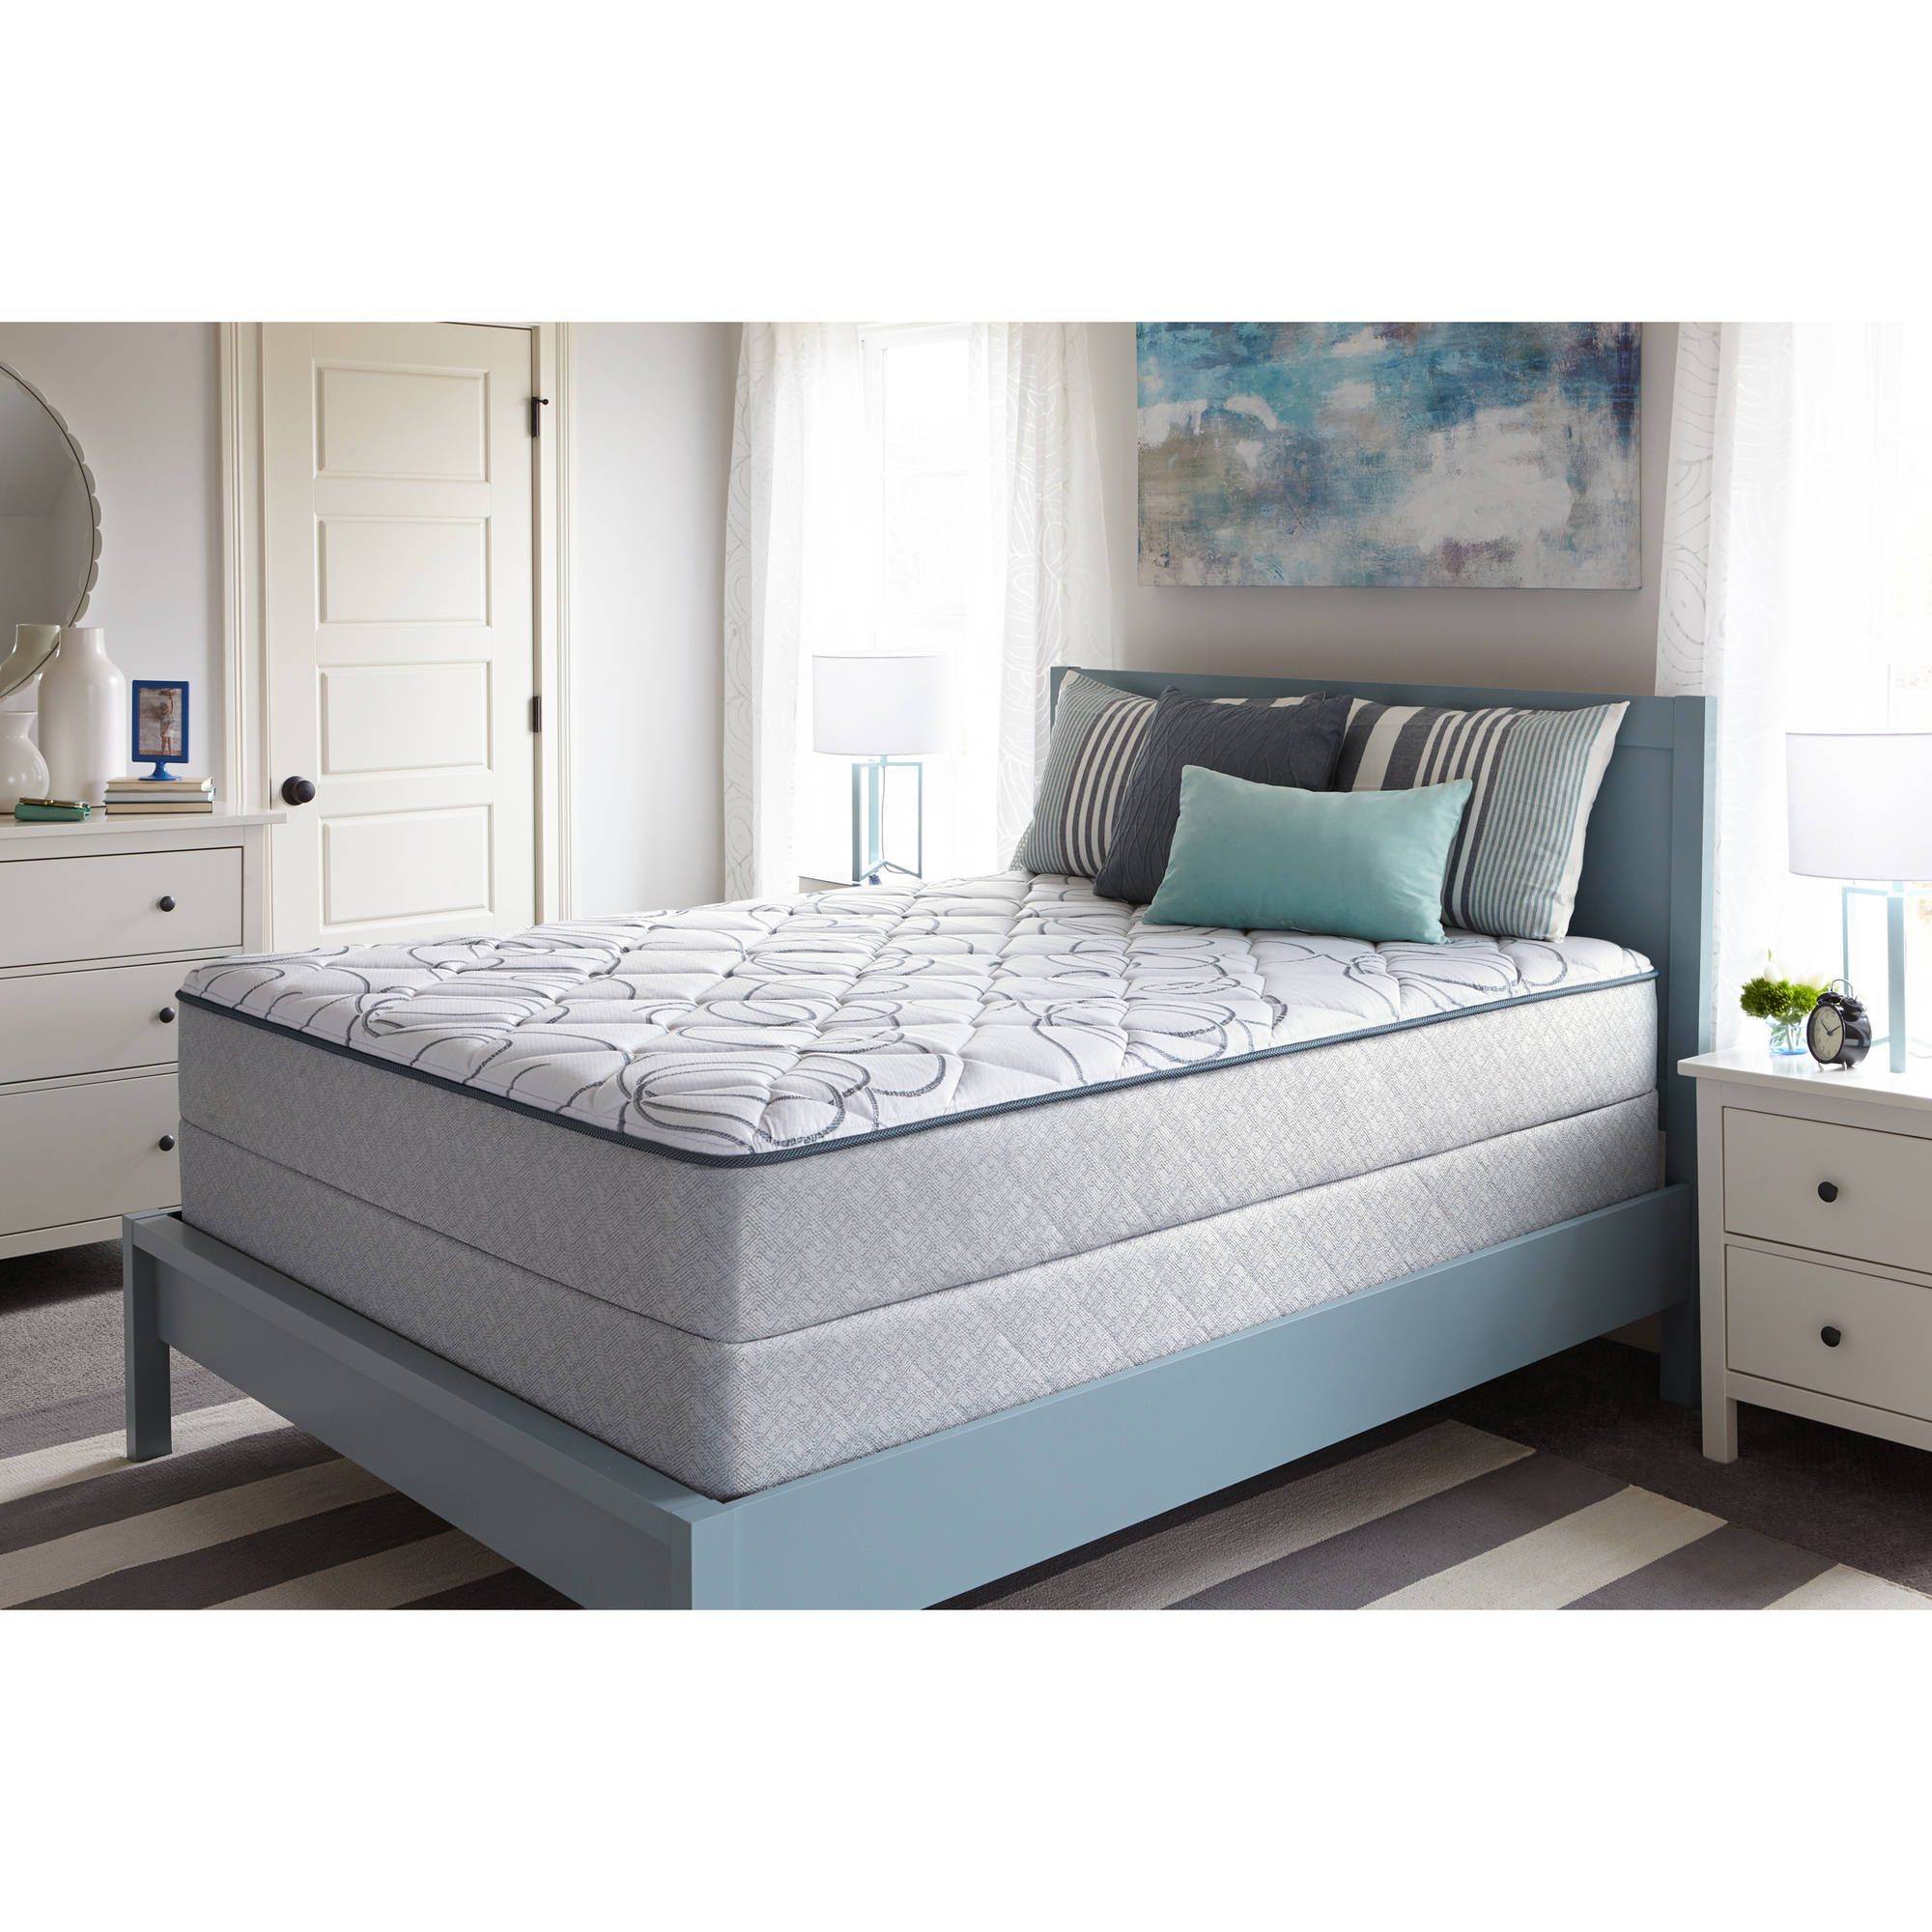 amusing size sets of bed on mattressking with measurements king cover full inspirations for sale mattress picture